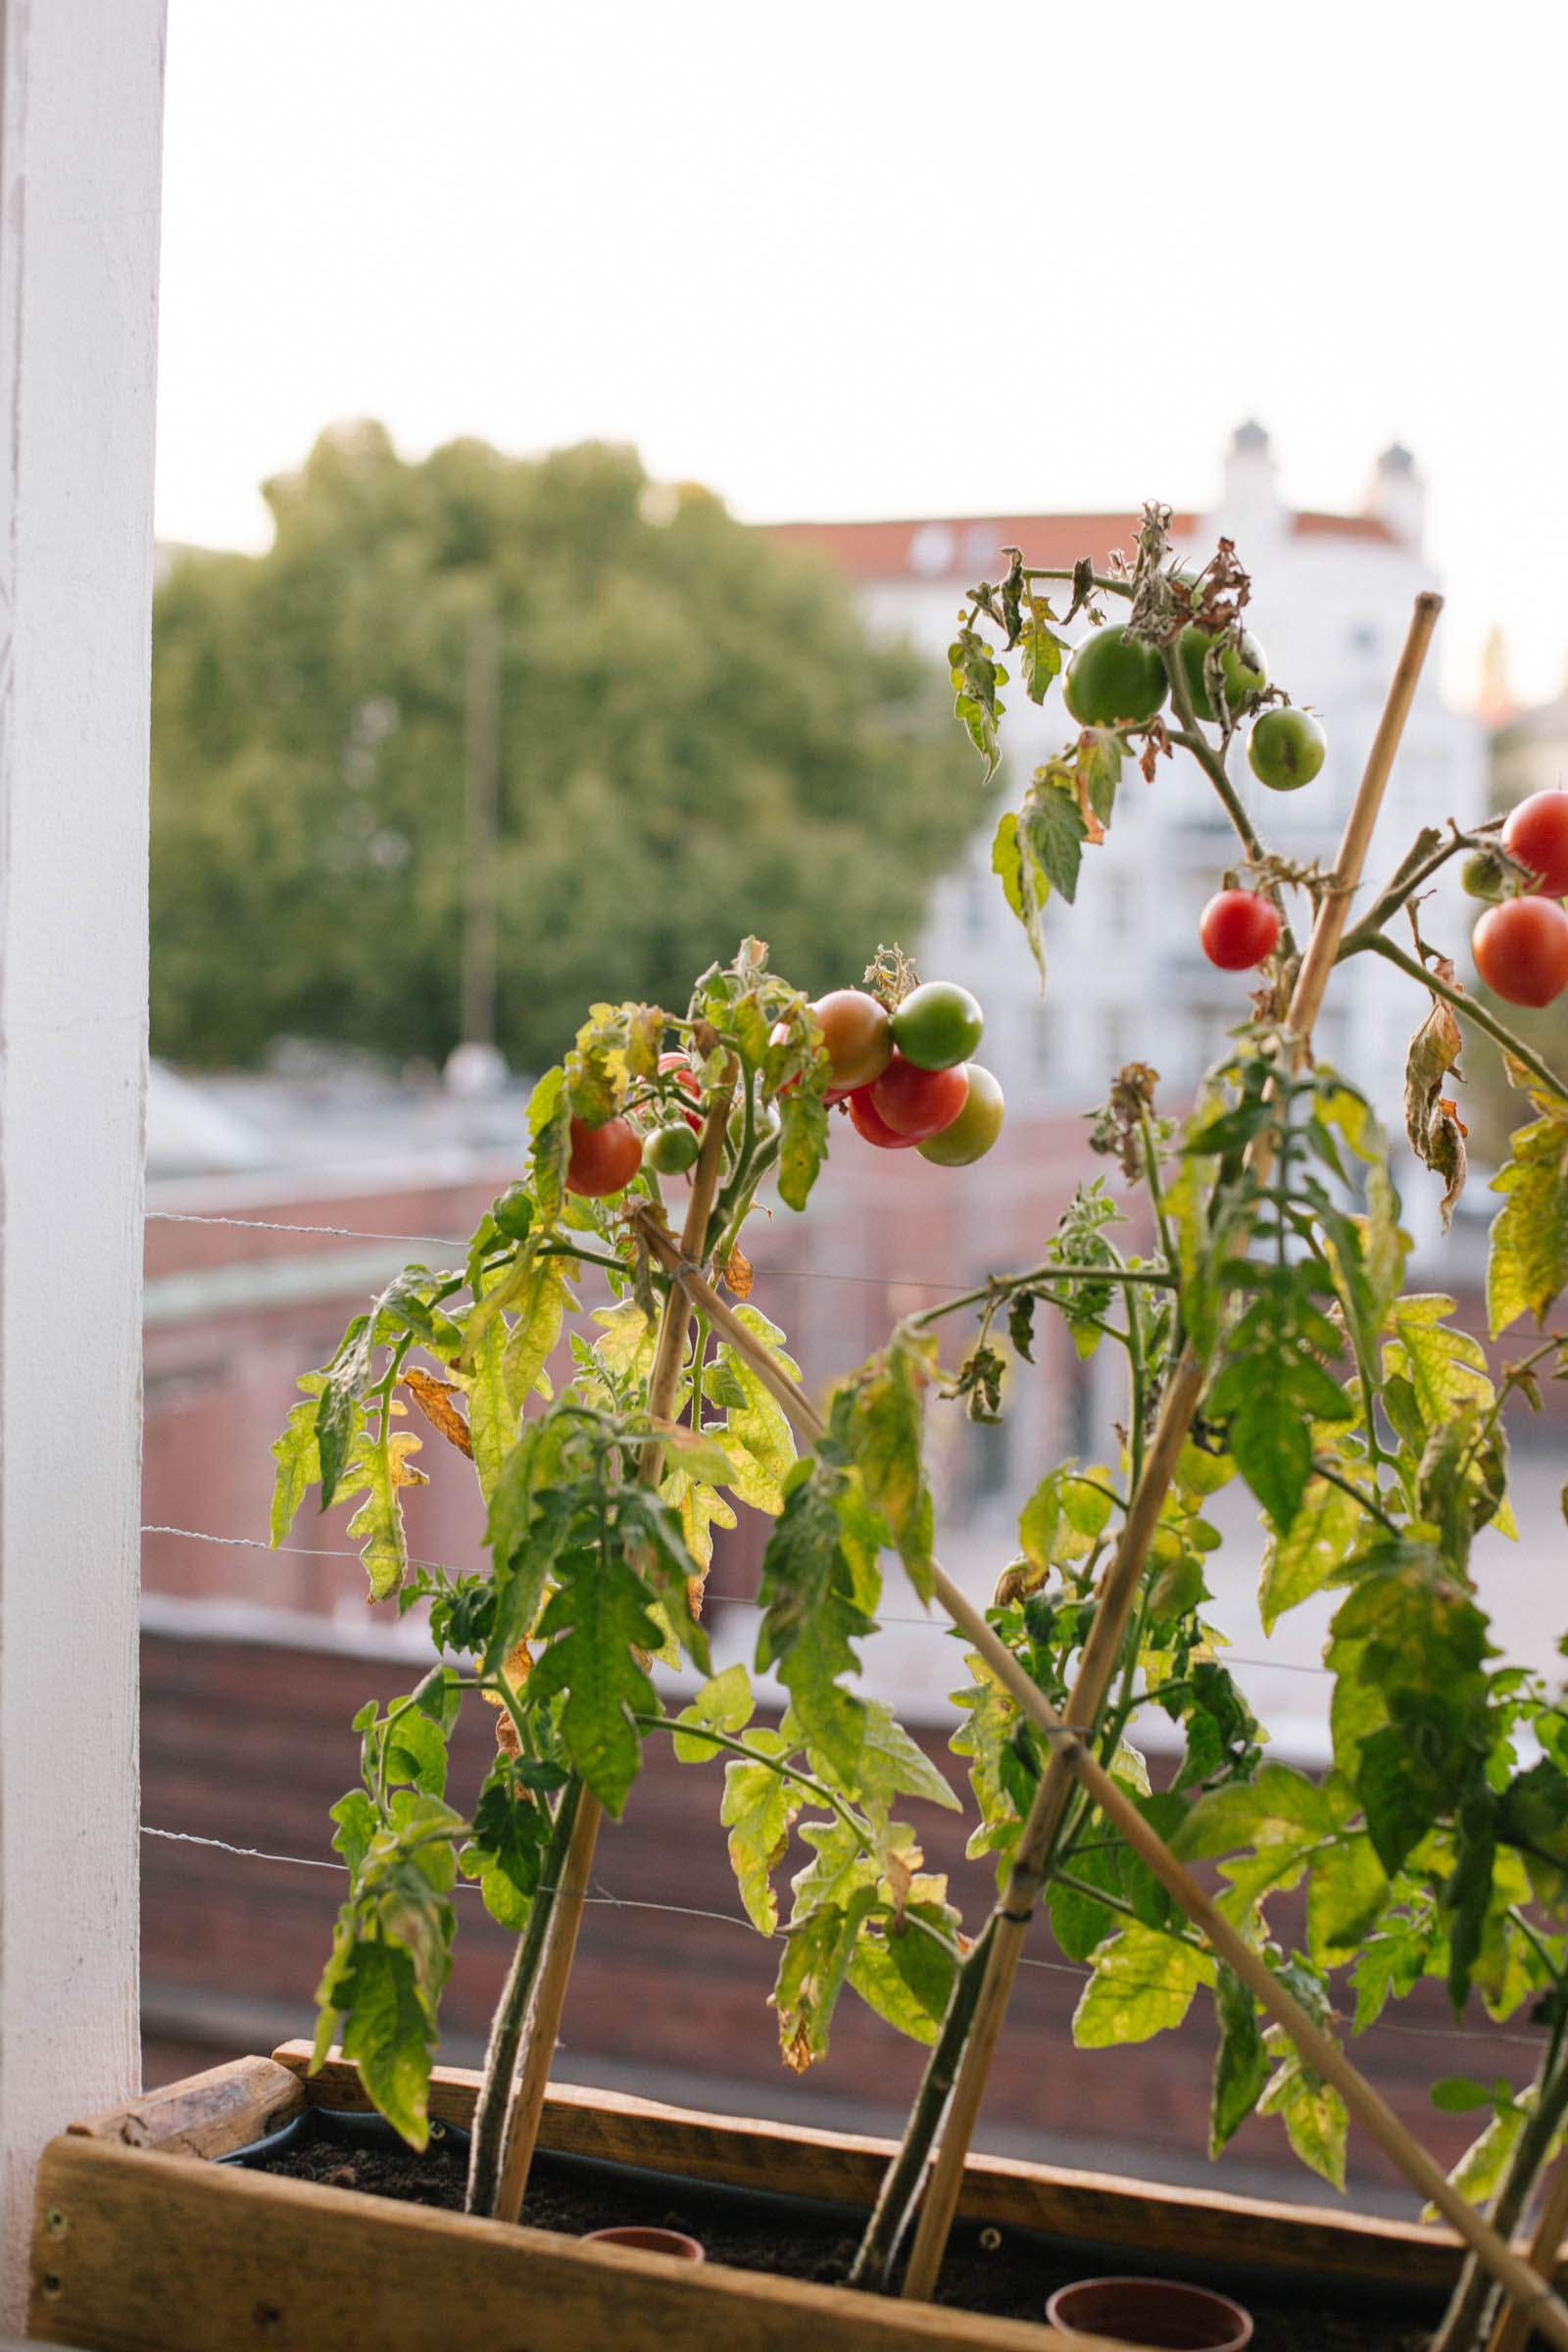 October 2015: The last red tomatoes.